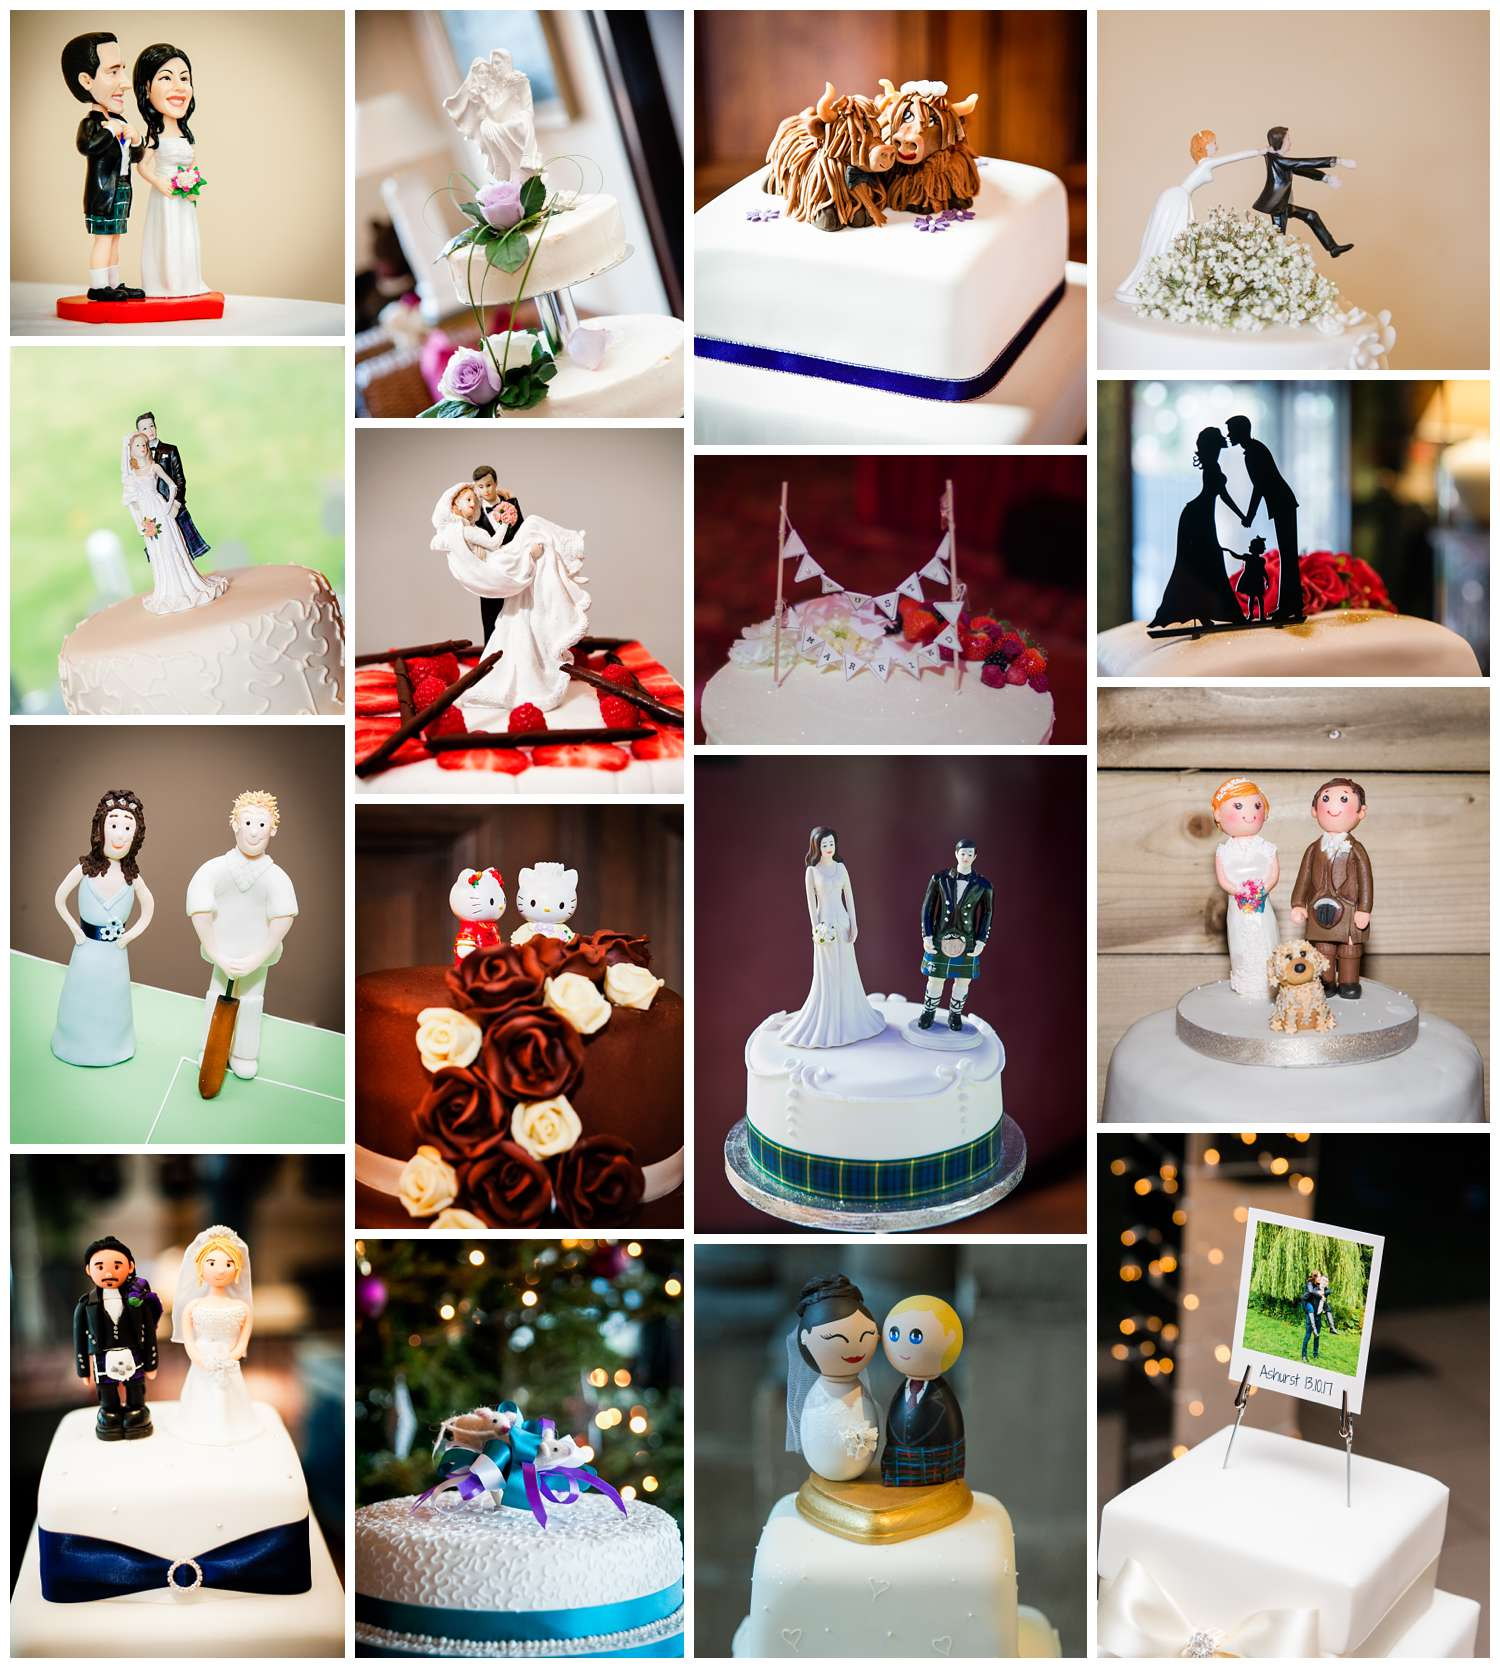 Wedding cake topper ideas, ideas for your wedding cake